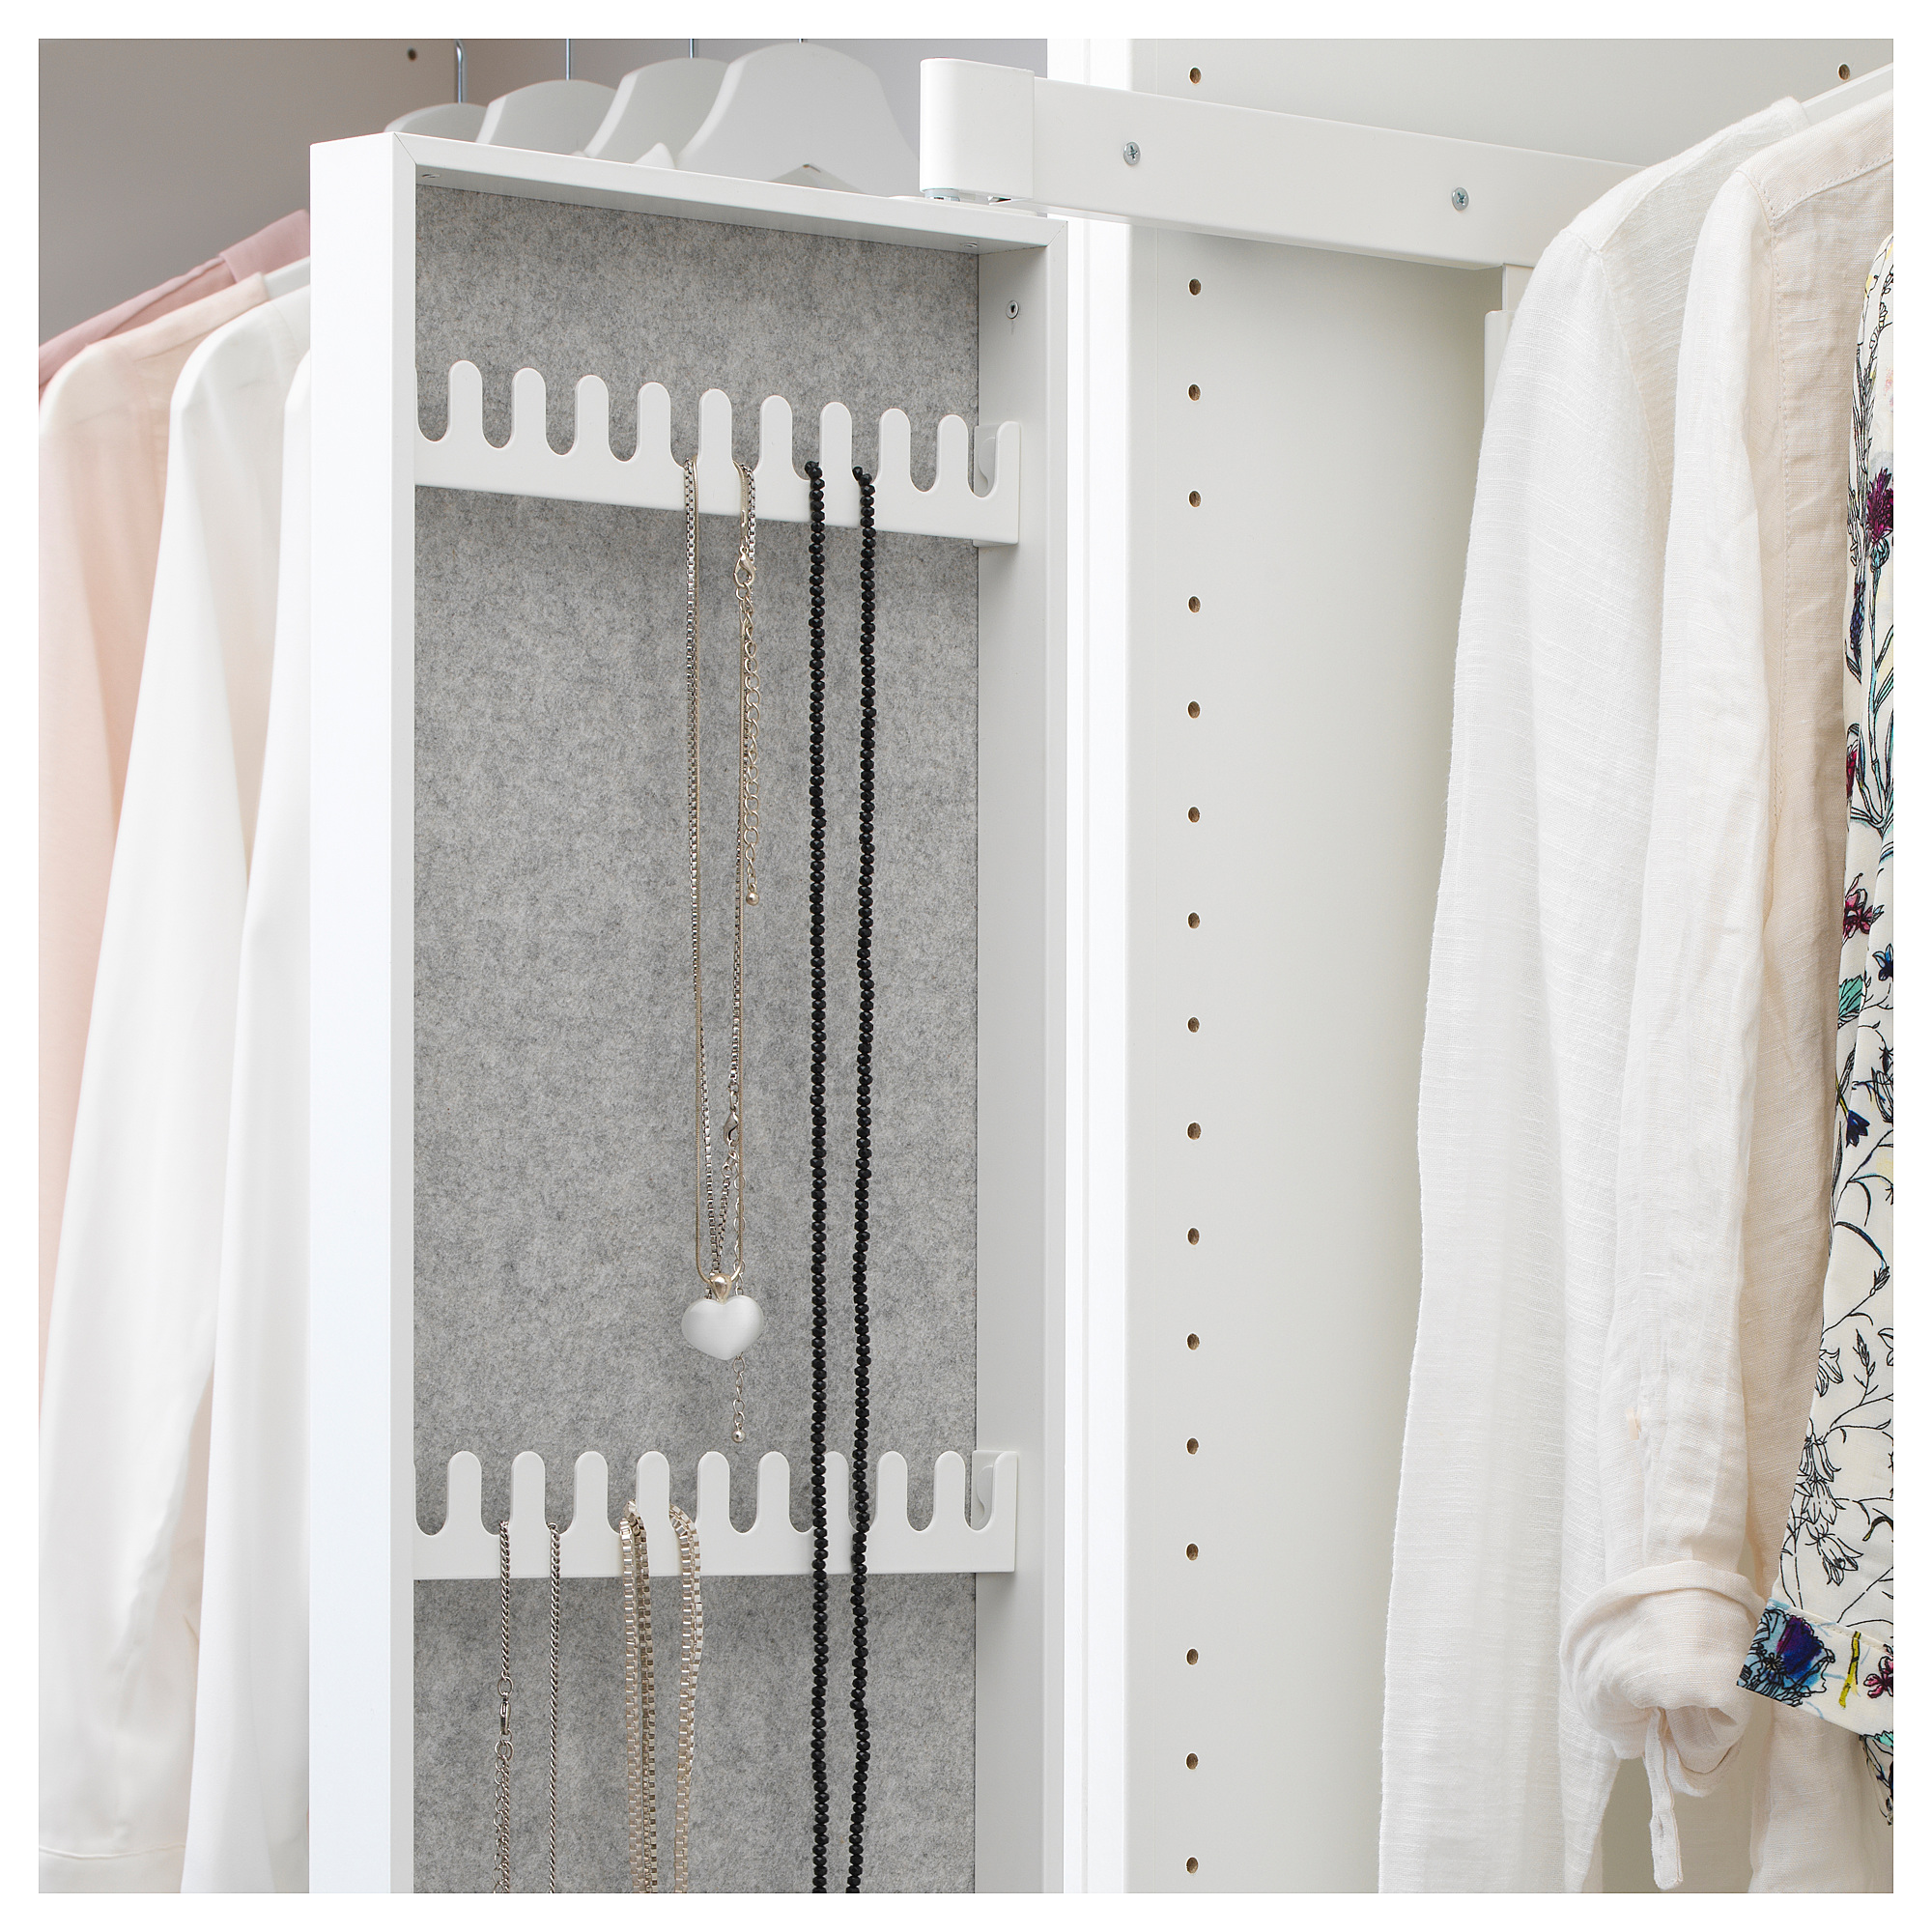 KOMPLEMENT Pull-out mirror with hooks White IKEA   Products